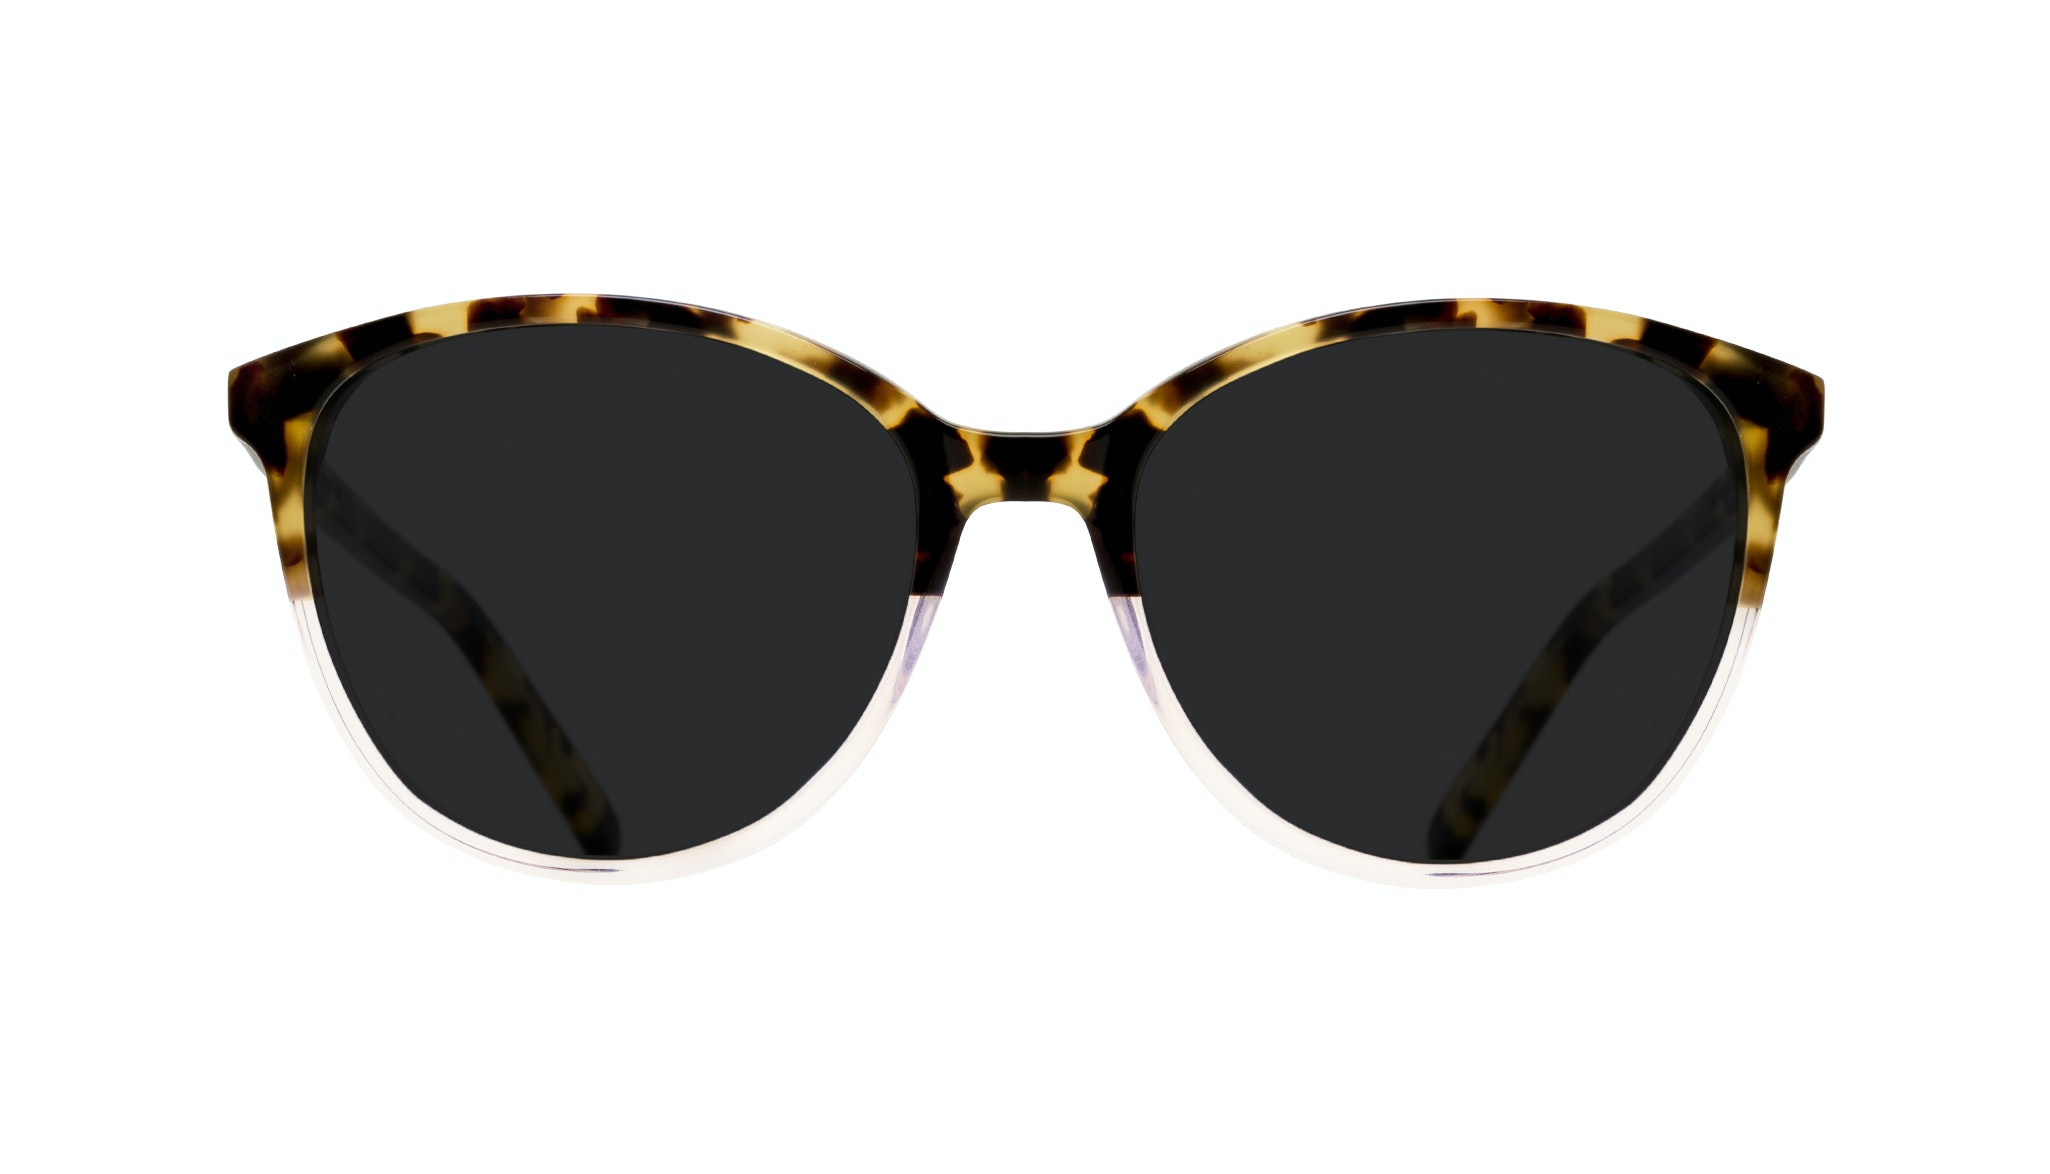 Affordable Fashion Glasses Round Sunglasses Women Imagine Blond Tort Front